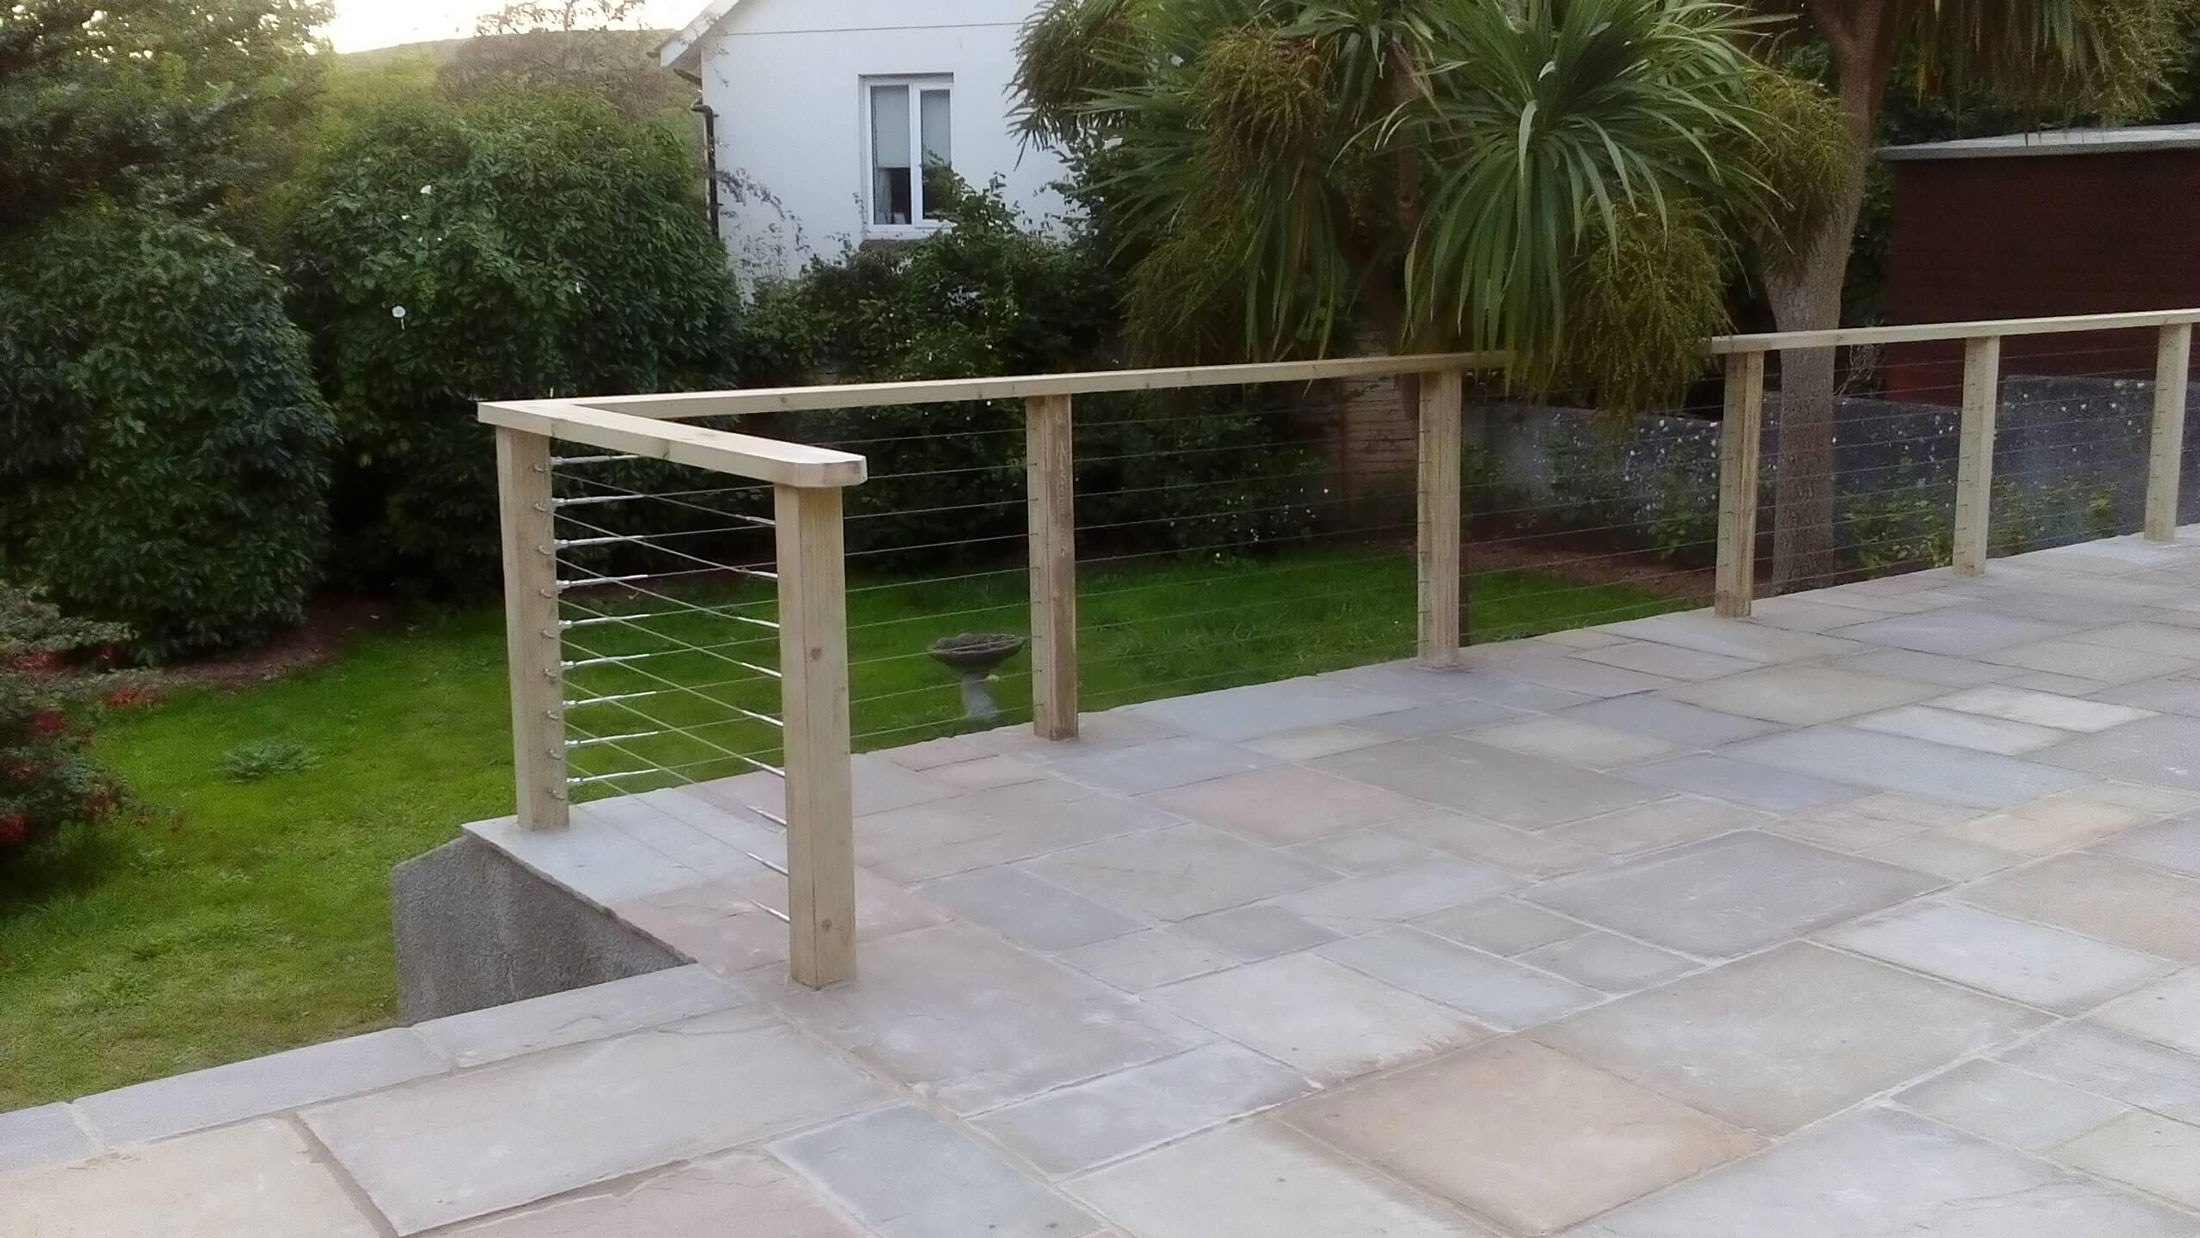 ... Paved Patio Wooden Handrails4 ...